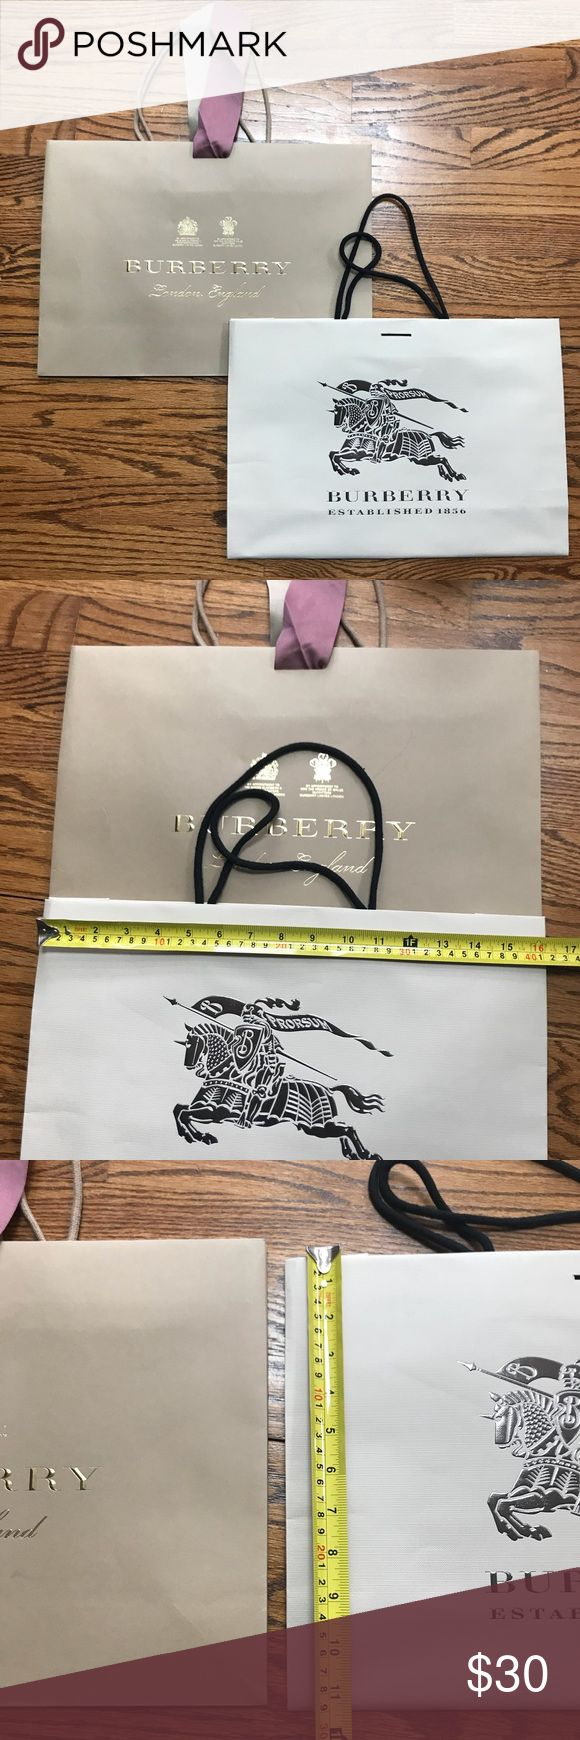 """Burberry shopping bags bundle Two authentic medium Burberry bags sizes 16""""x11.5"""" and a slightly taller one at 16""""x12"""". One bag is missing ribbon closure. Burberry Bags Travel Bags"""